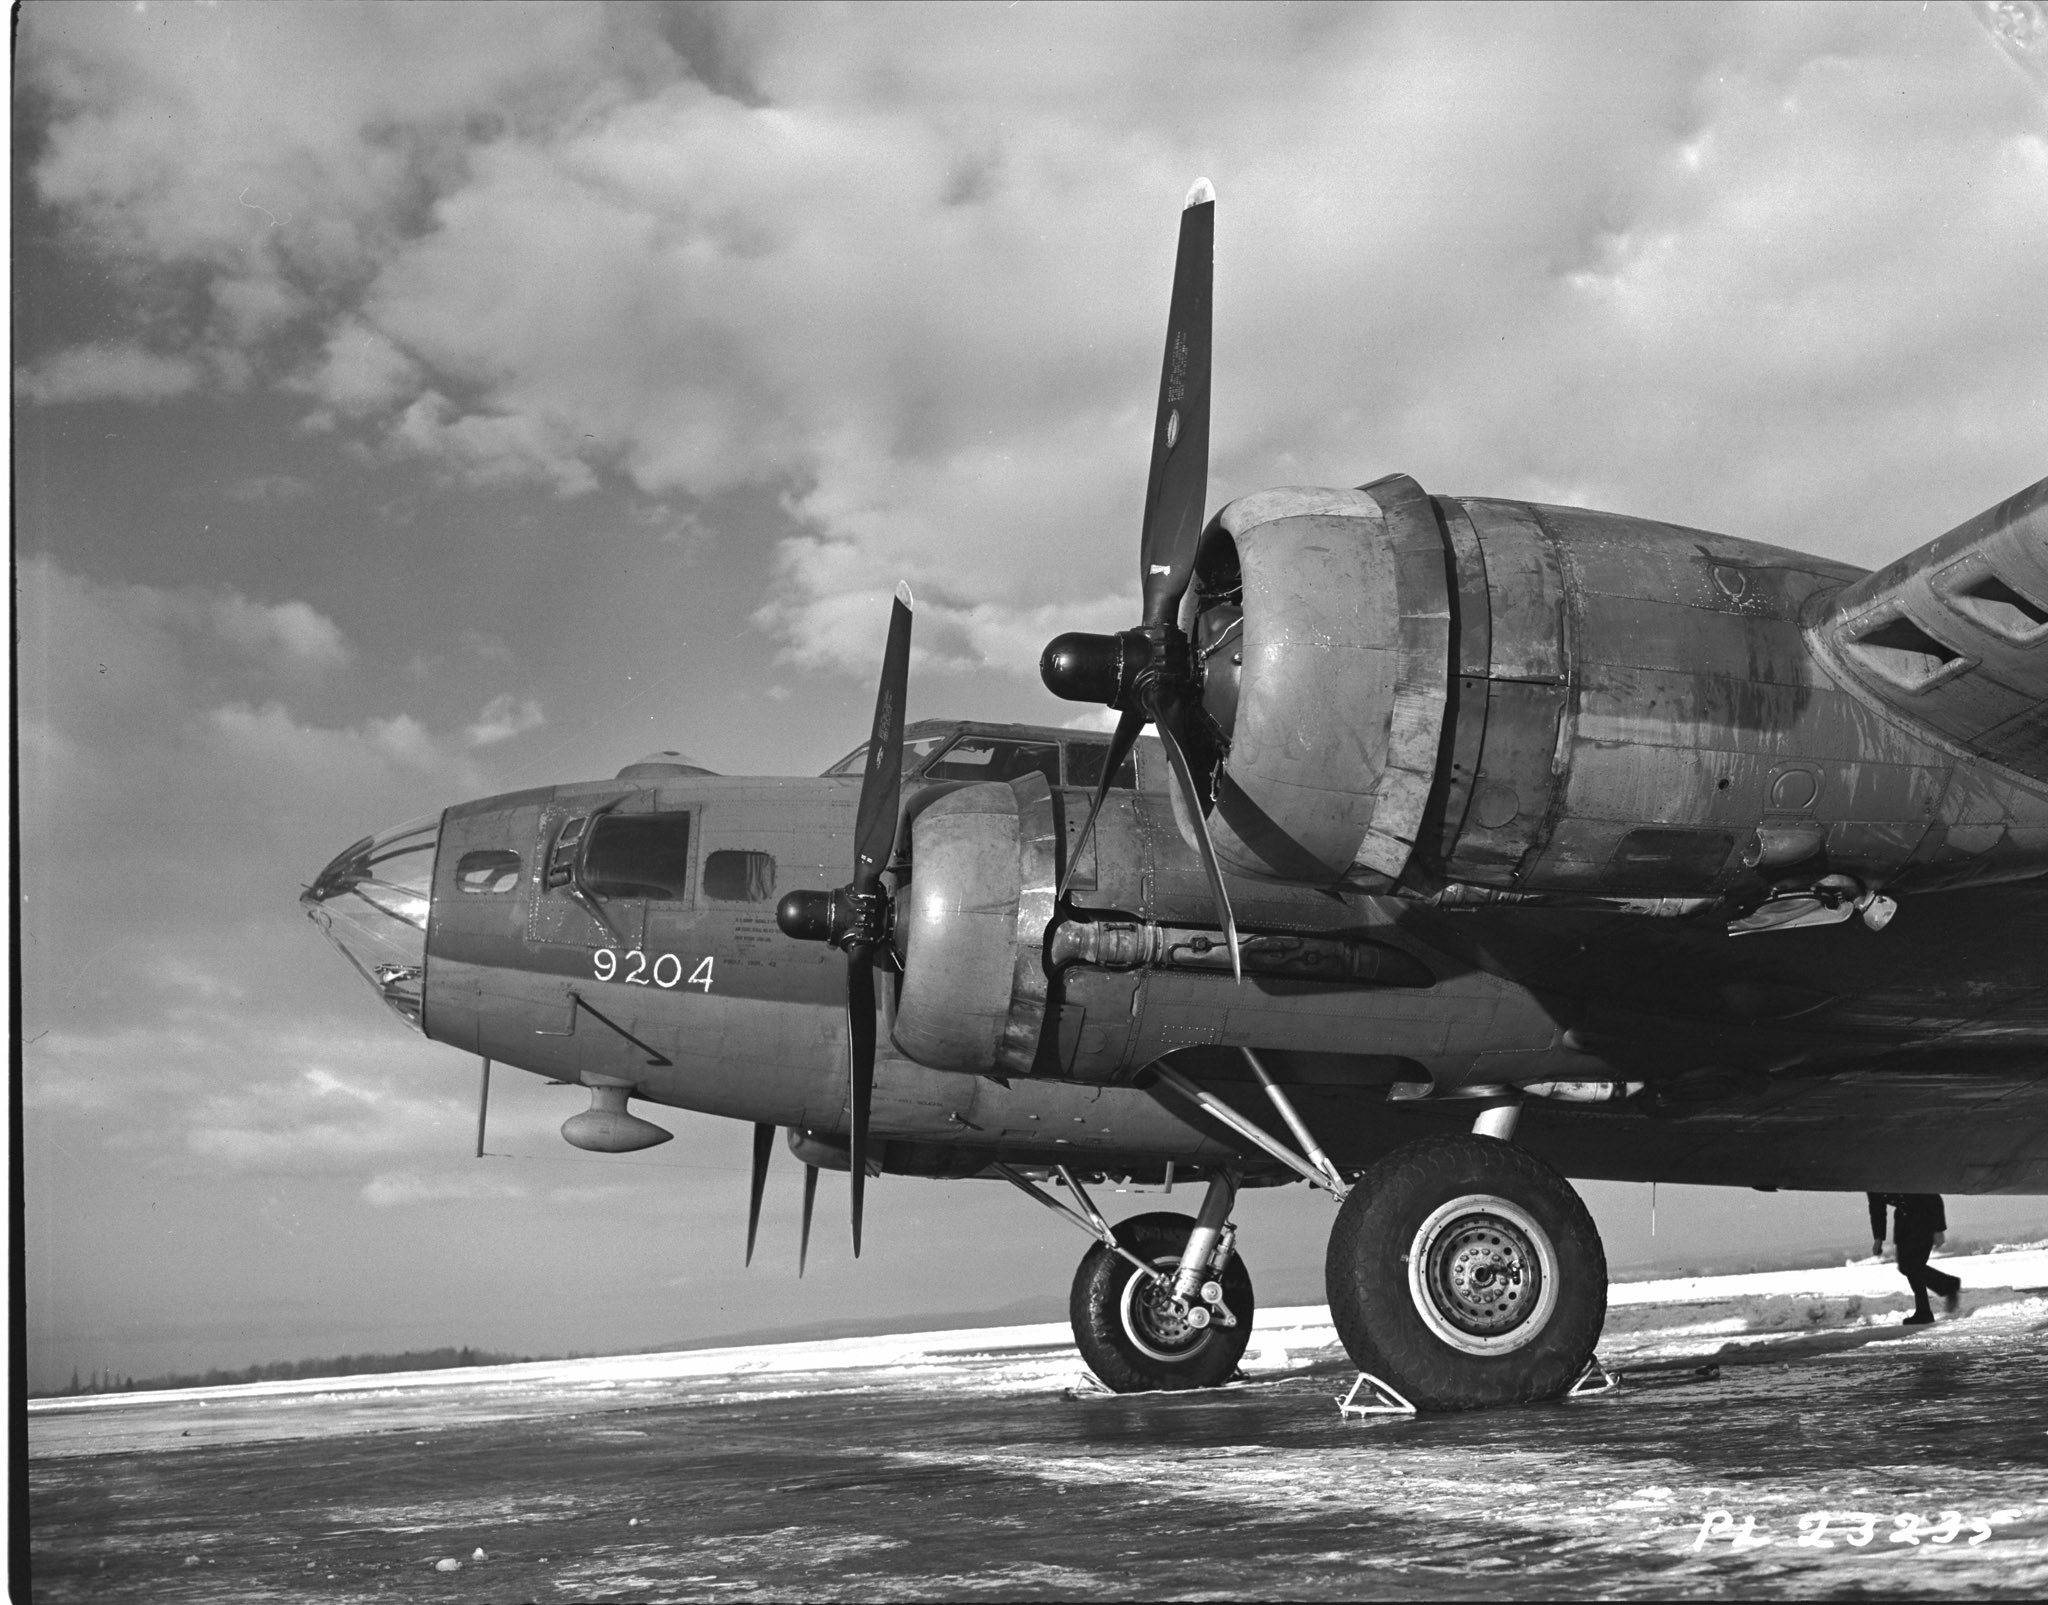 Wing Commander Bruce Middleton, commanding officer of 168 Heavy Transport Squadron, piloted this B-17 Flying Fortress from Ottawa to Britain with the first mail load of the RCAF's new service to soldiers, sailors, and airmen serving overseas during the Second World War. The flight left Rockcliffe, near Ottawa, on December 15, 1943. PHOTO: DND Archives, PL-23235